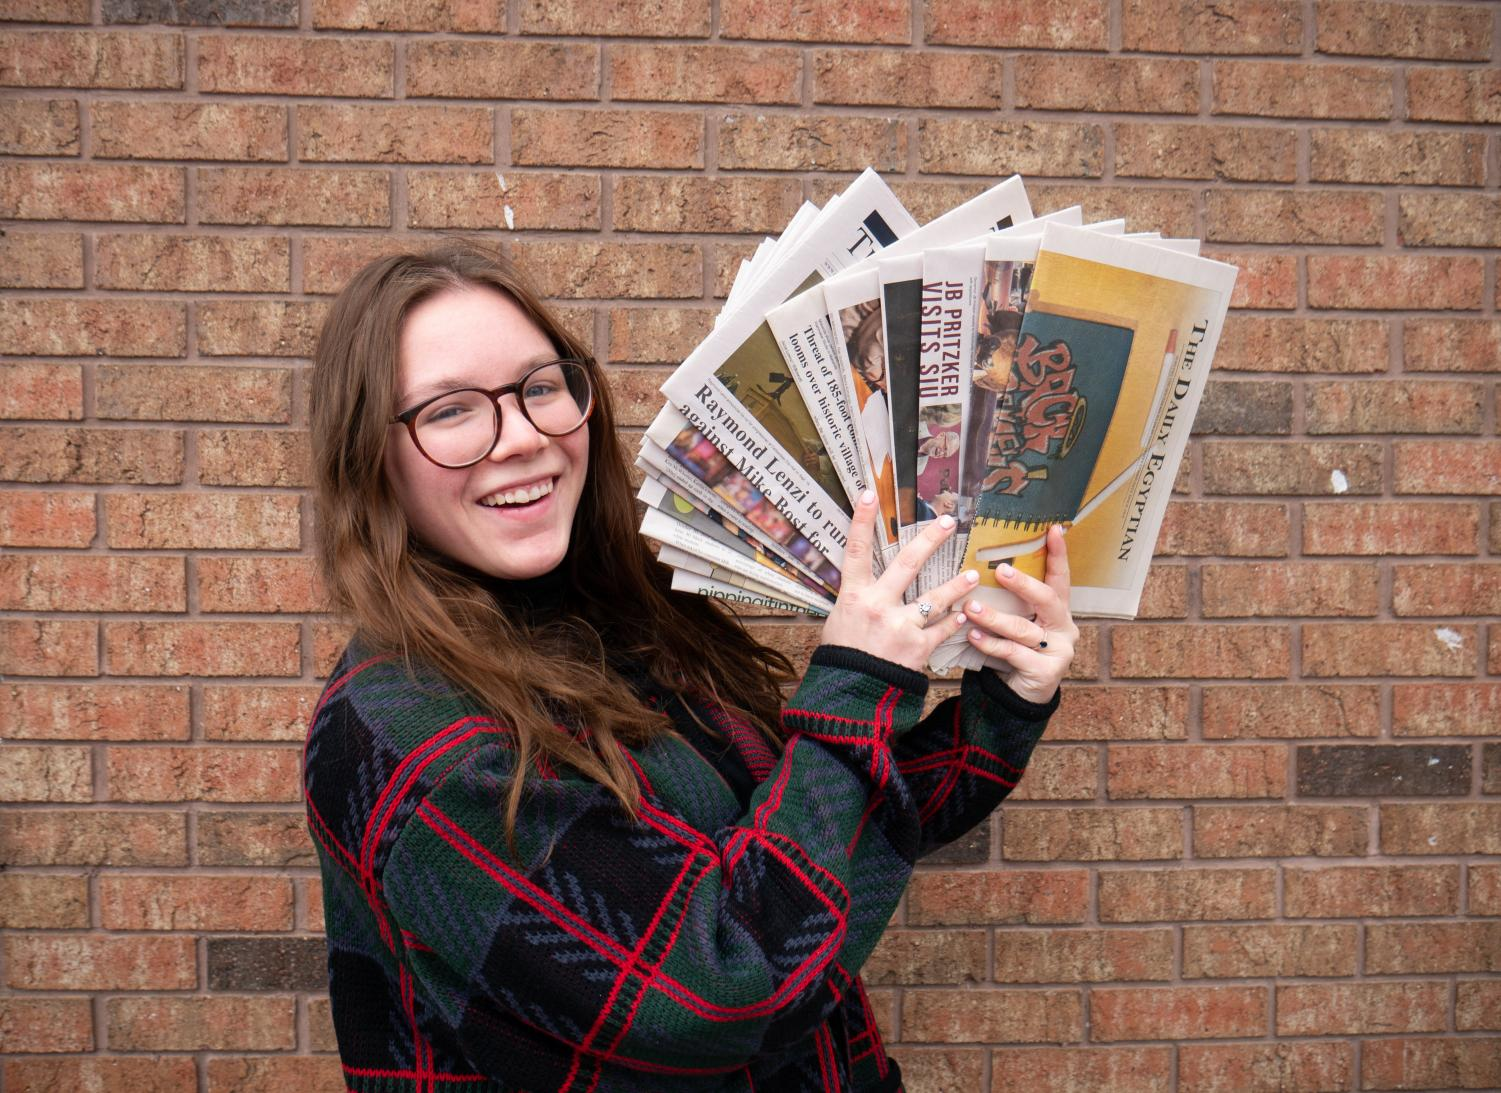 Editor-in-chief Emily Cooper holds up copies of the Daily Egyptian on Dec. 10, 2019.